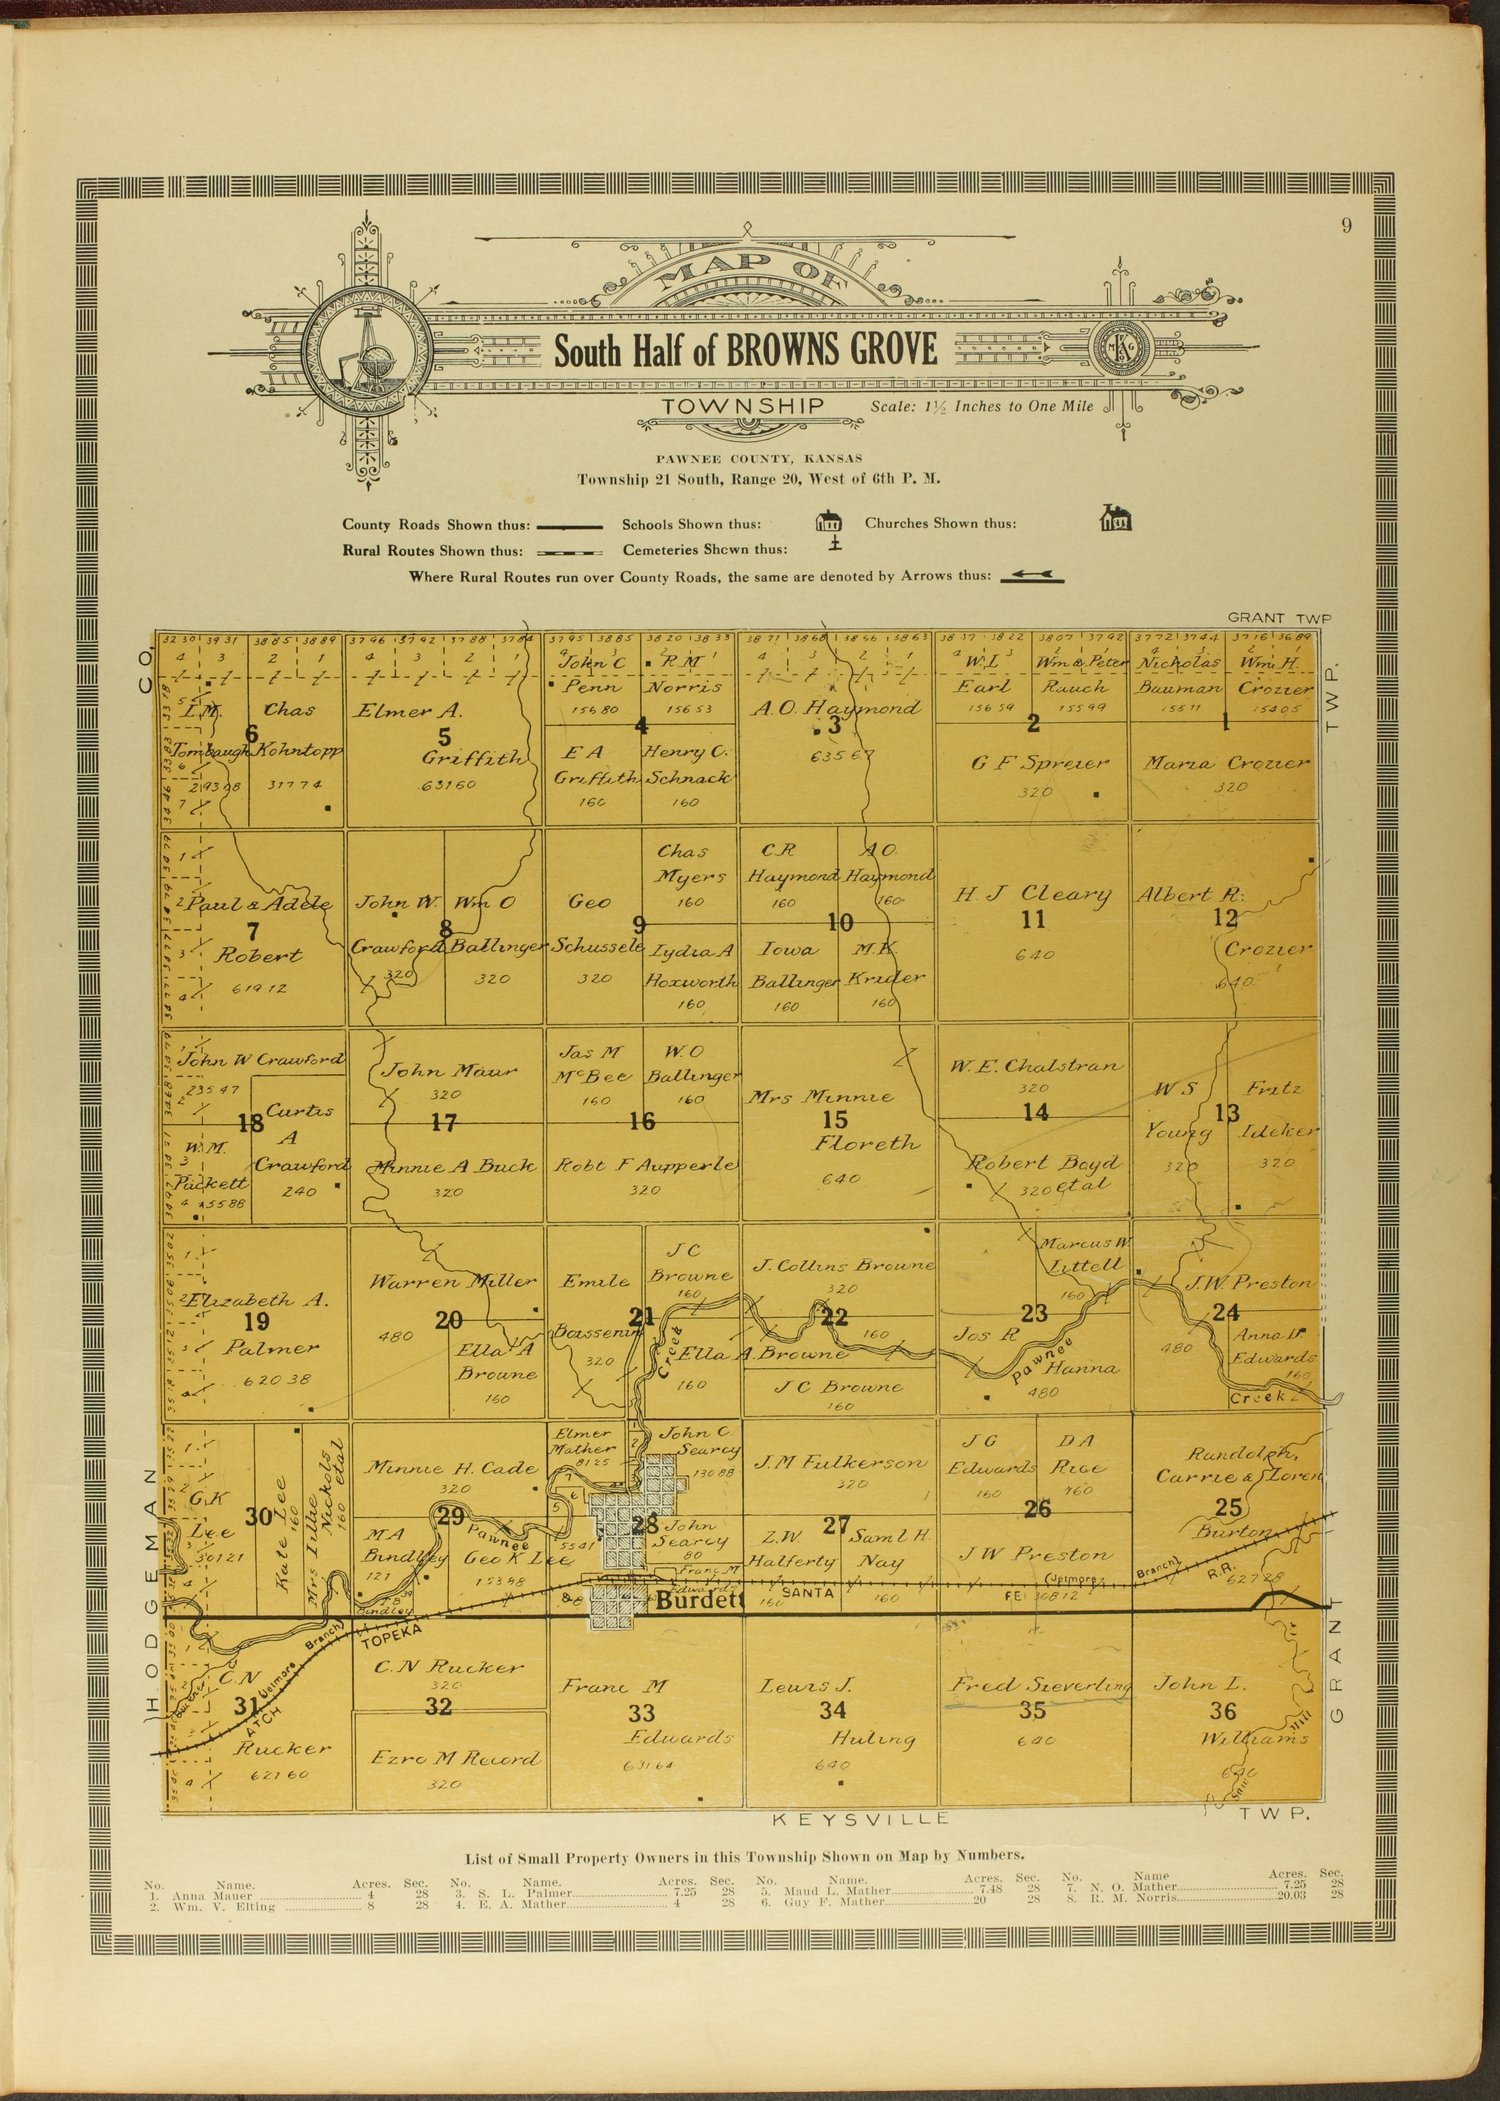 Atlas and plat book of Pawnee County, Kansas - 9